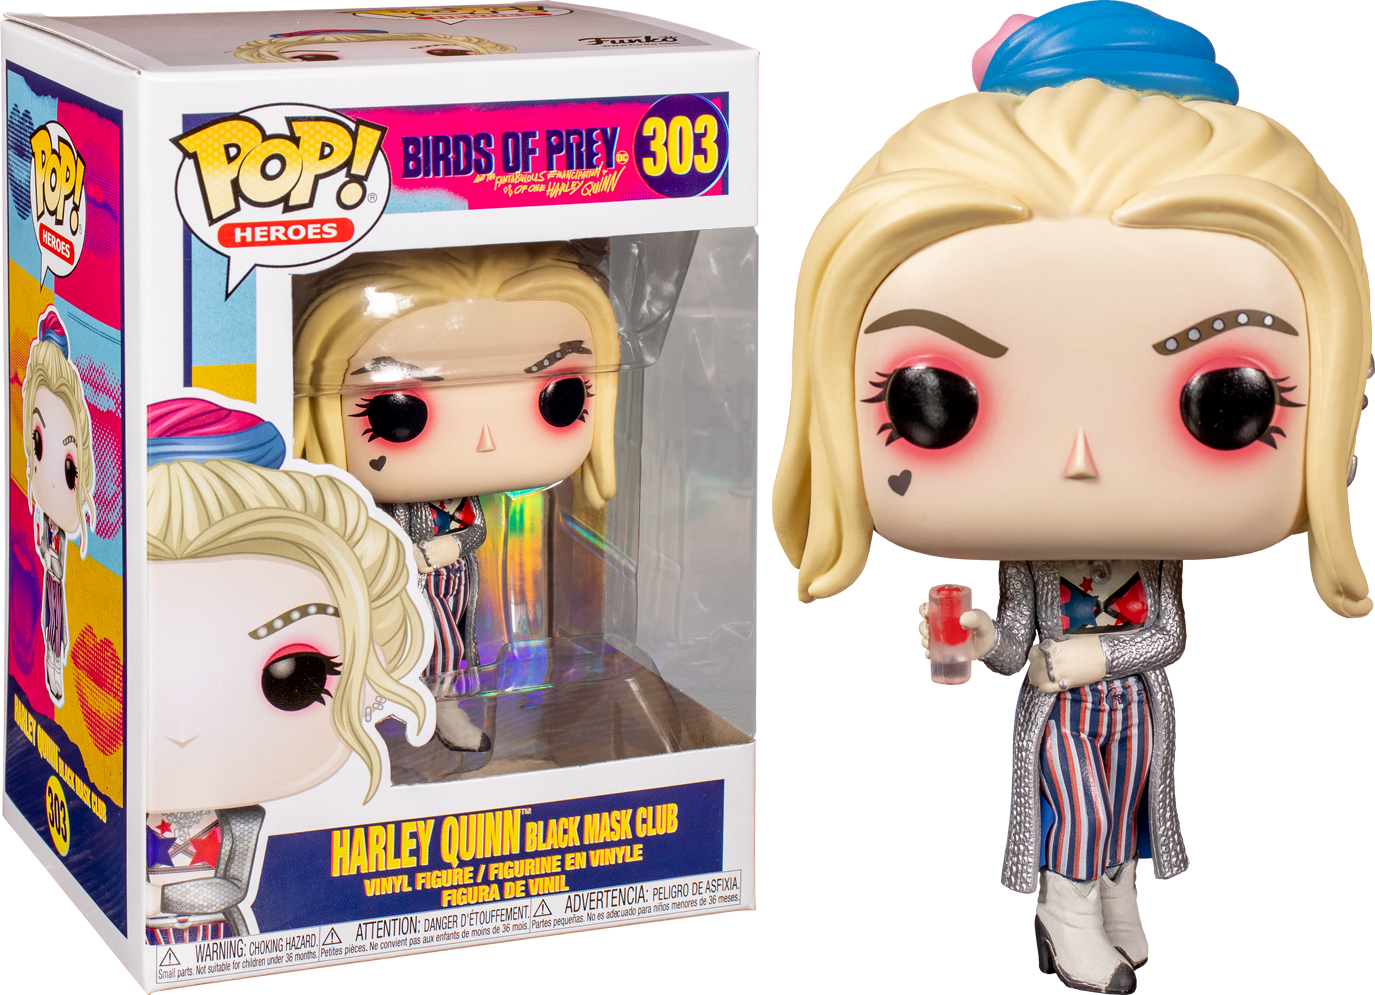 Funko Pop Birds Of Prey 2020 Harley Quinn Black Mask Club 303 The Amazing Collectables